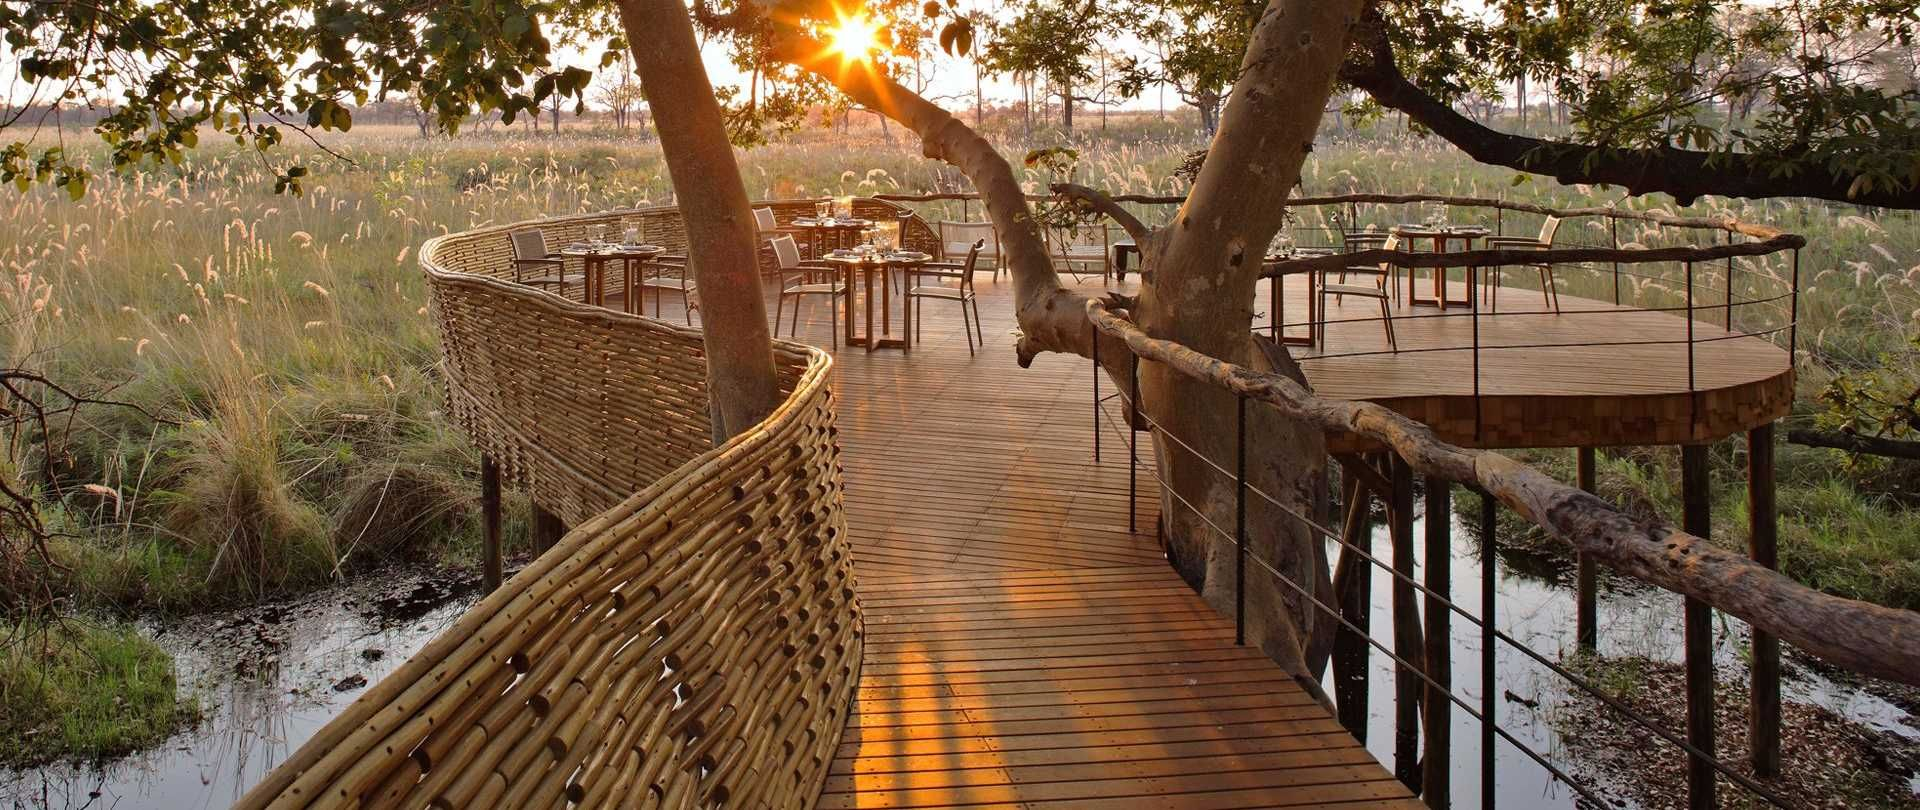 Grand A Botswana Safari At AndBeyond Sandibe Okavango Delta Lodge 47